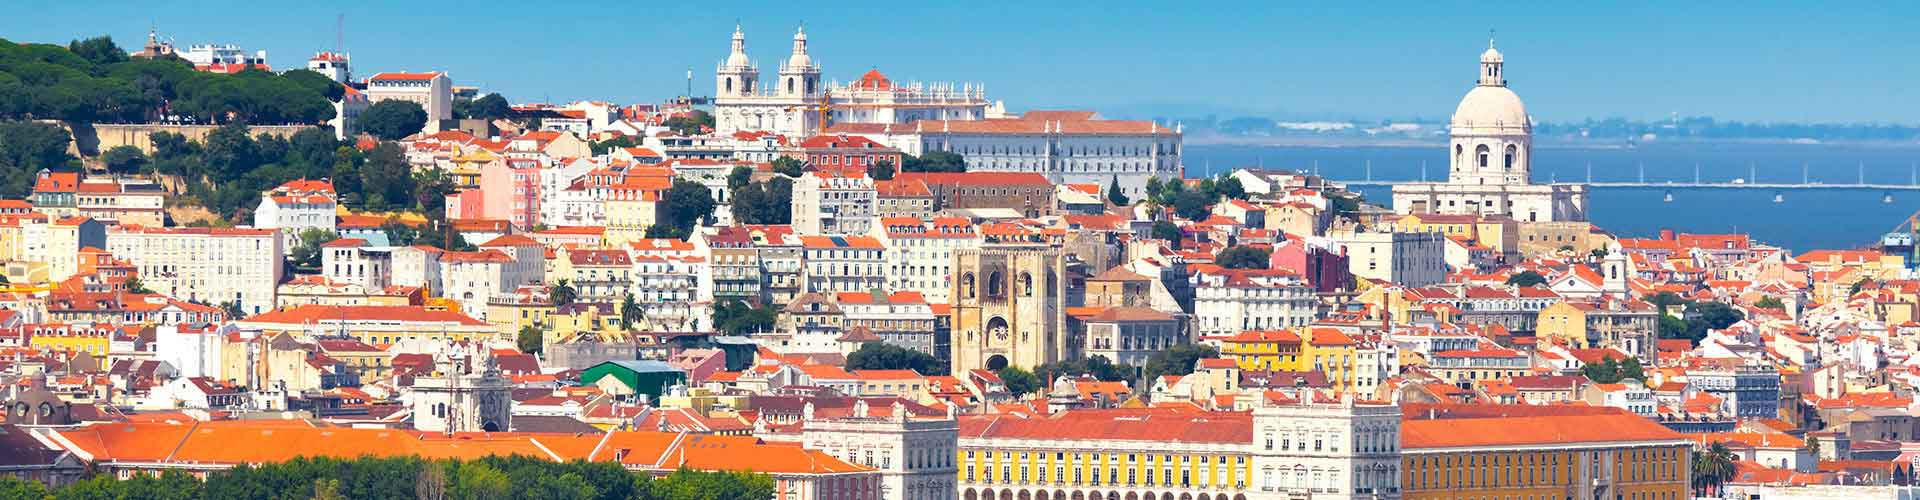 Lisboa hostels em lisboa hostels - Salon immobilier portugal ...